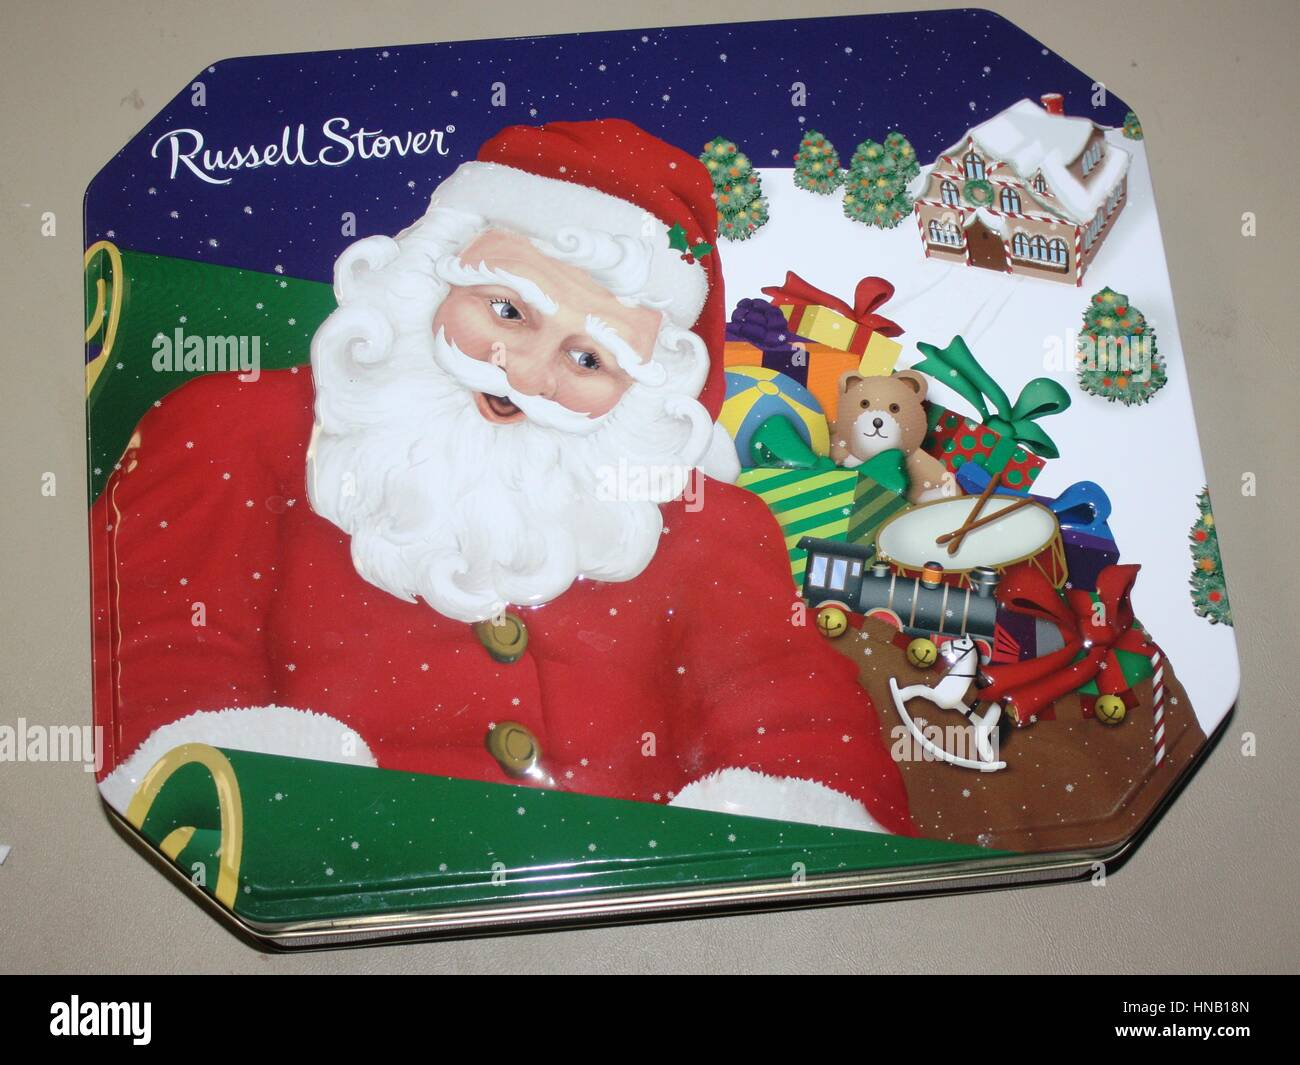 Santas bag stock photos santas bag stock images alamy russell stove once again captures the joy of the season stock image voltagebd Image collections